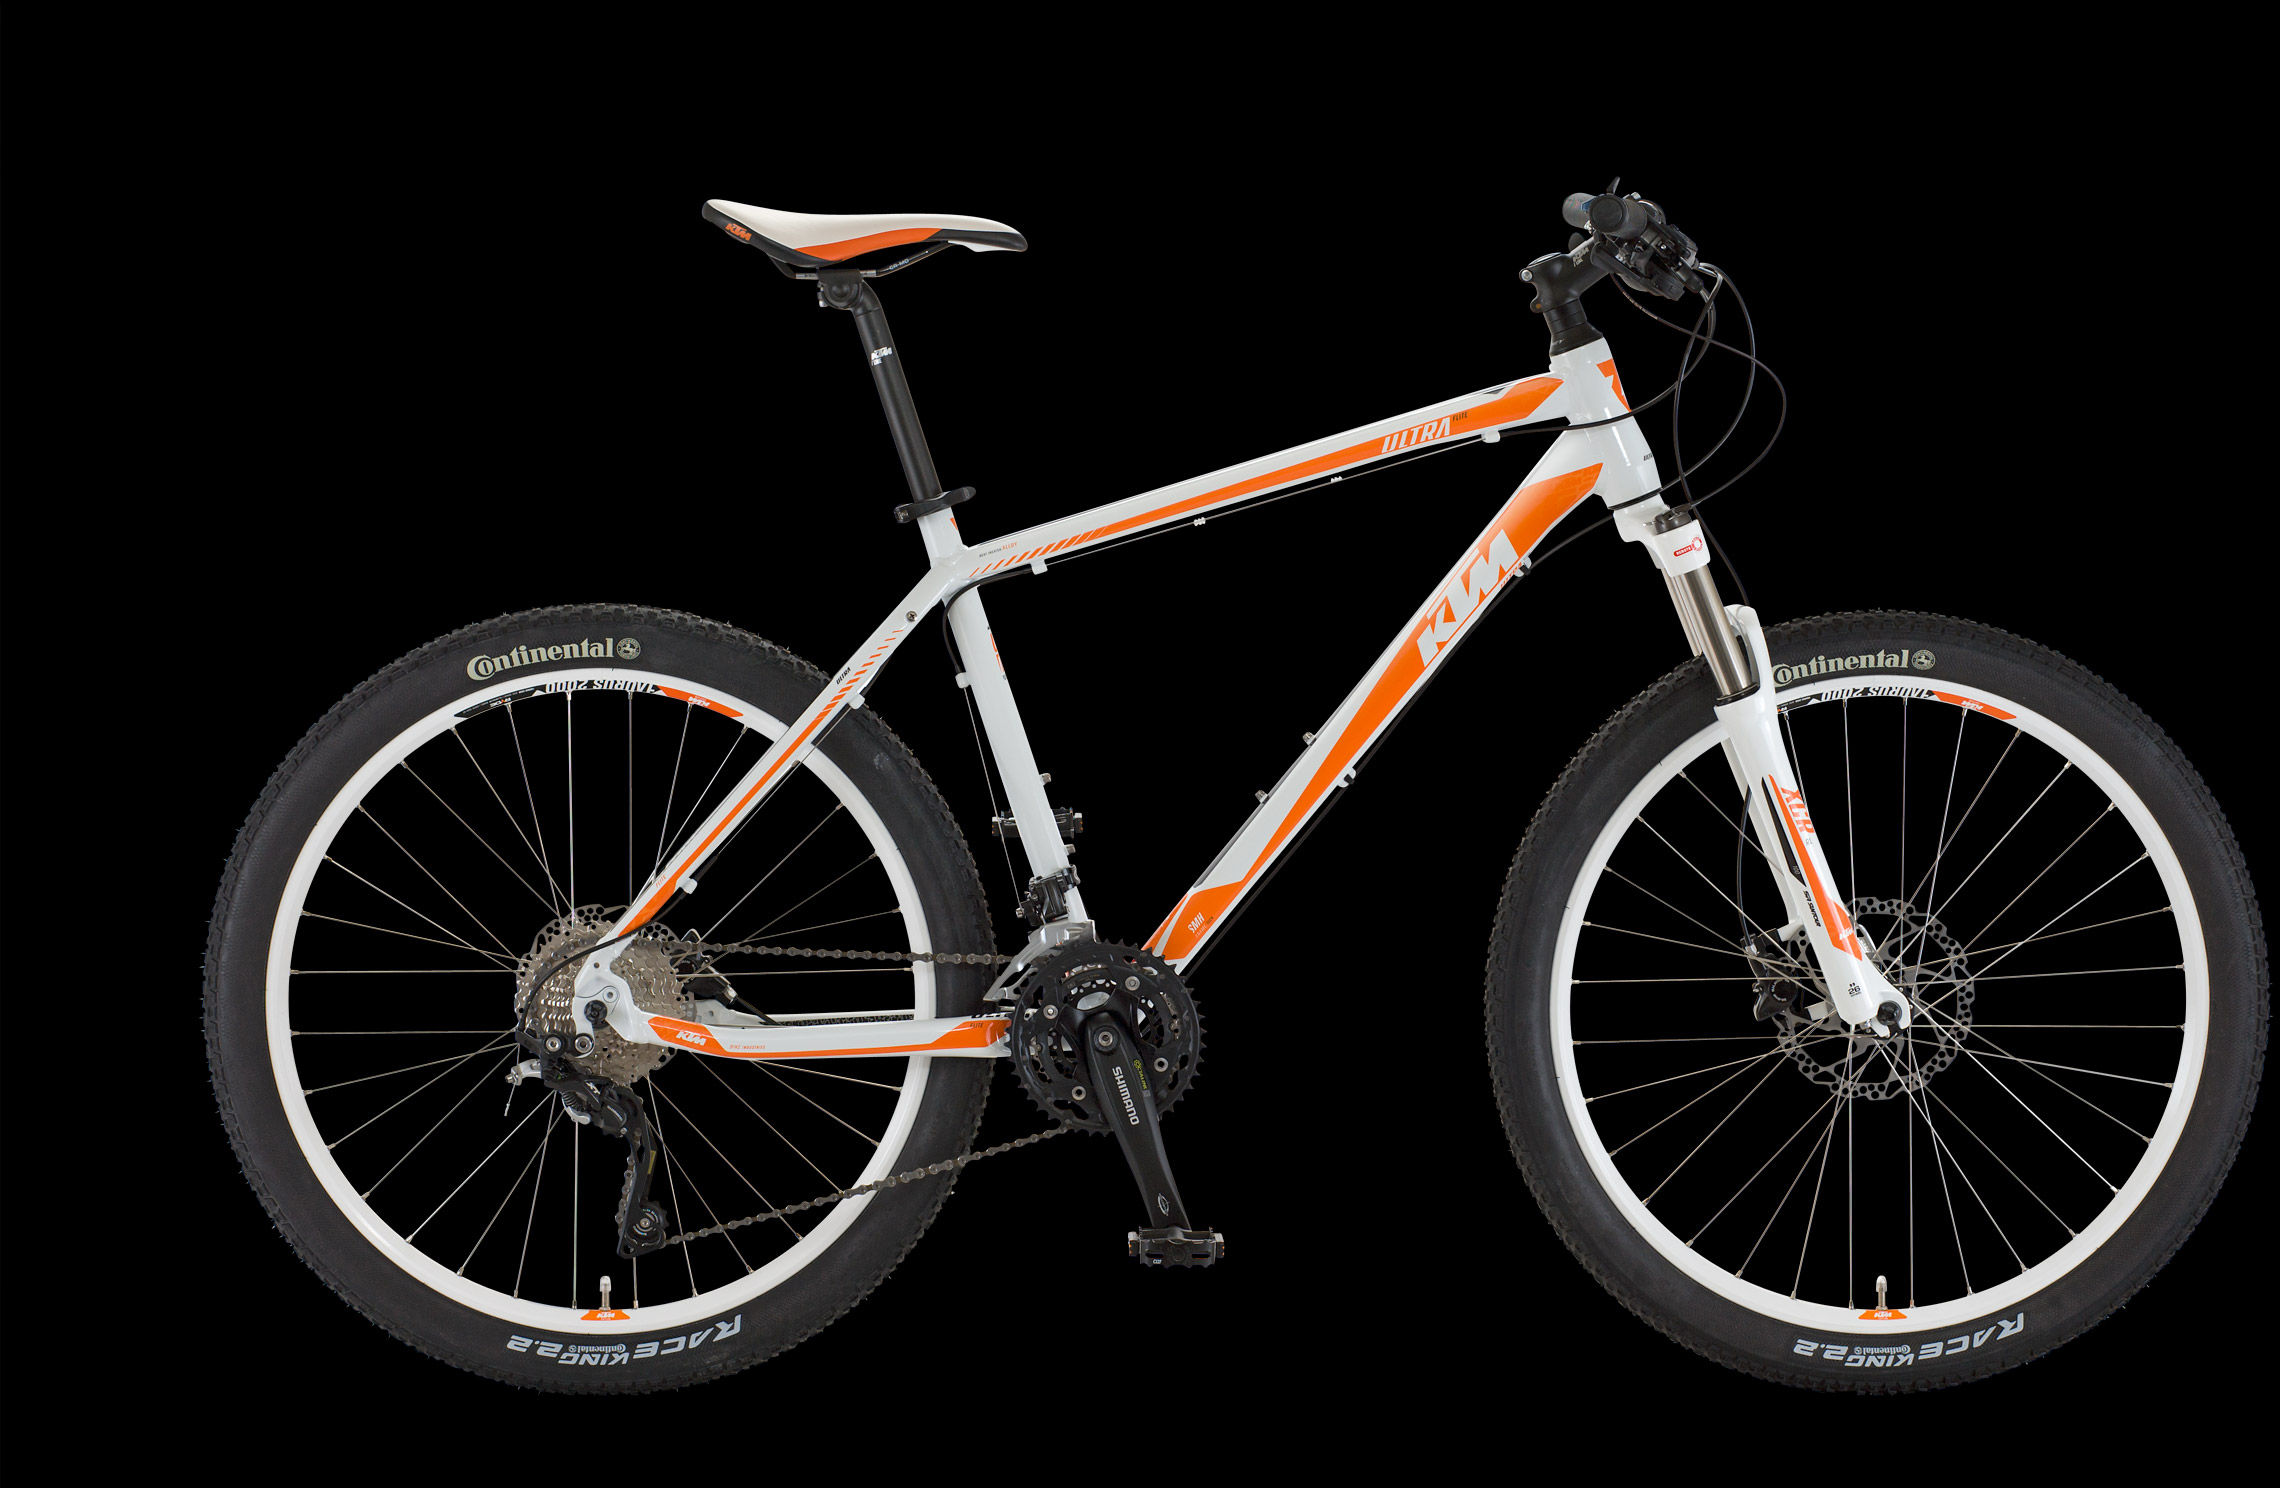 Ktm Ultra Flite 2013 Review The Bike List